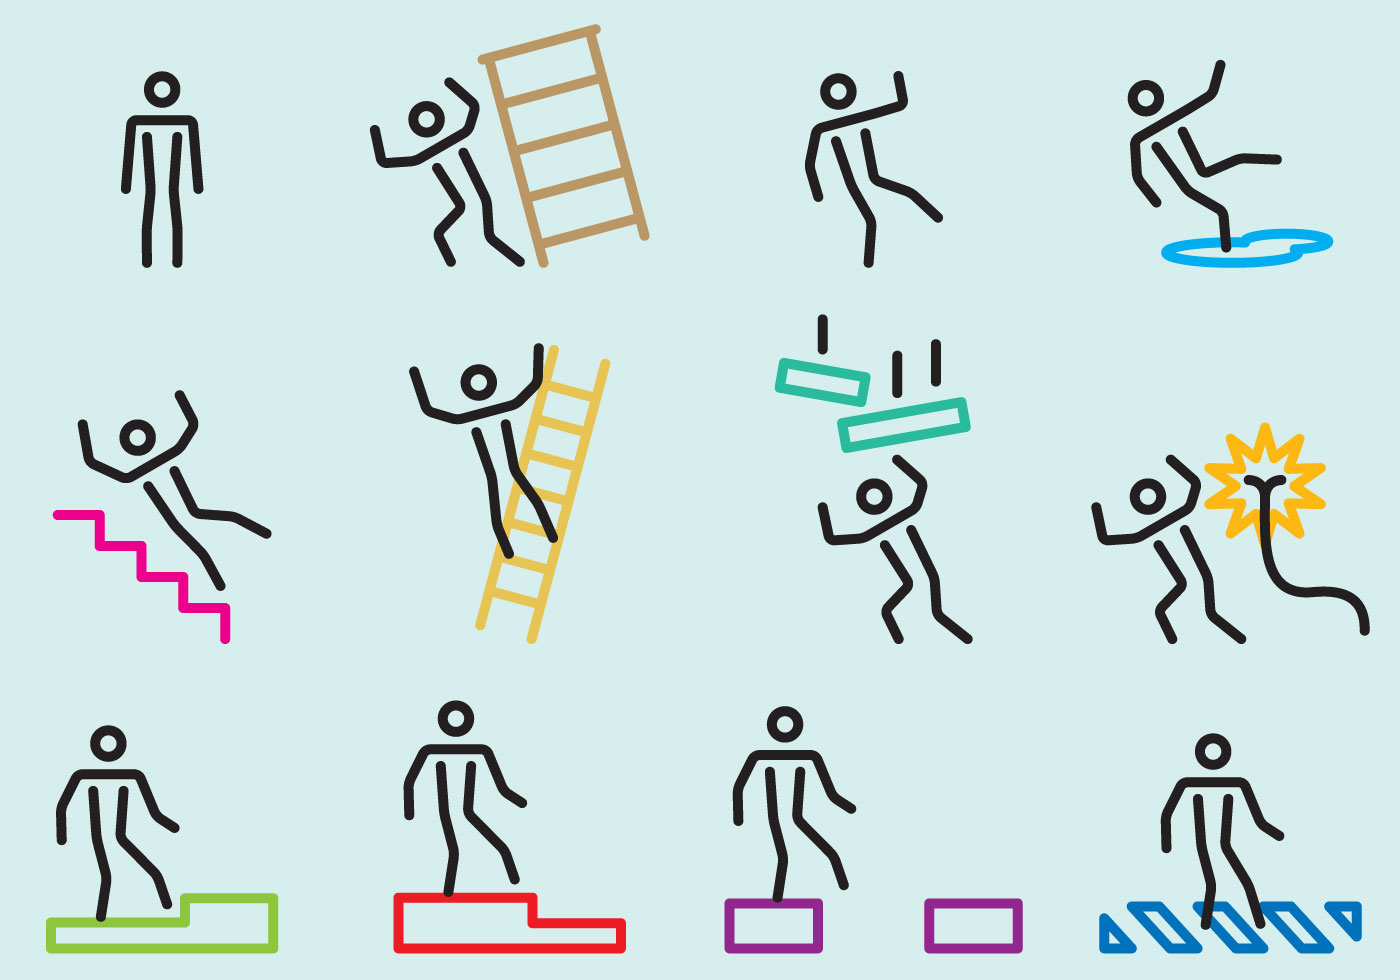 Cautions Stick Figure Signs Download Free Vector Art